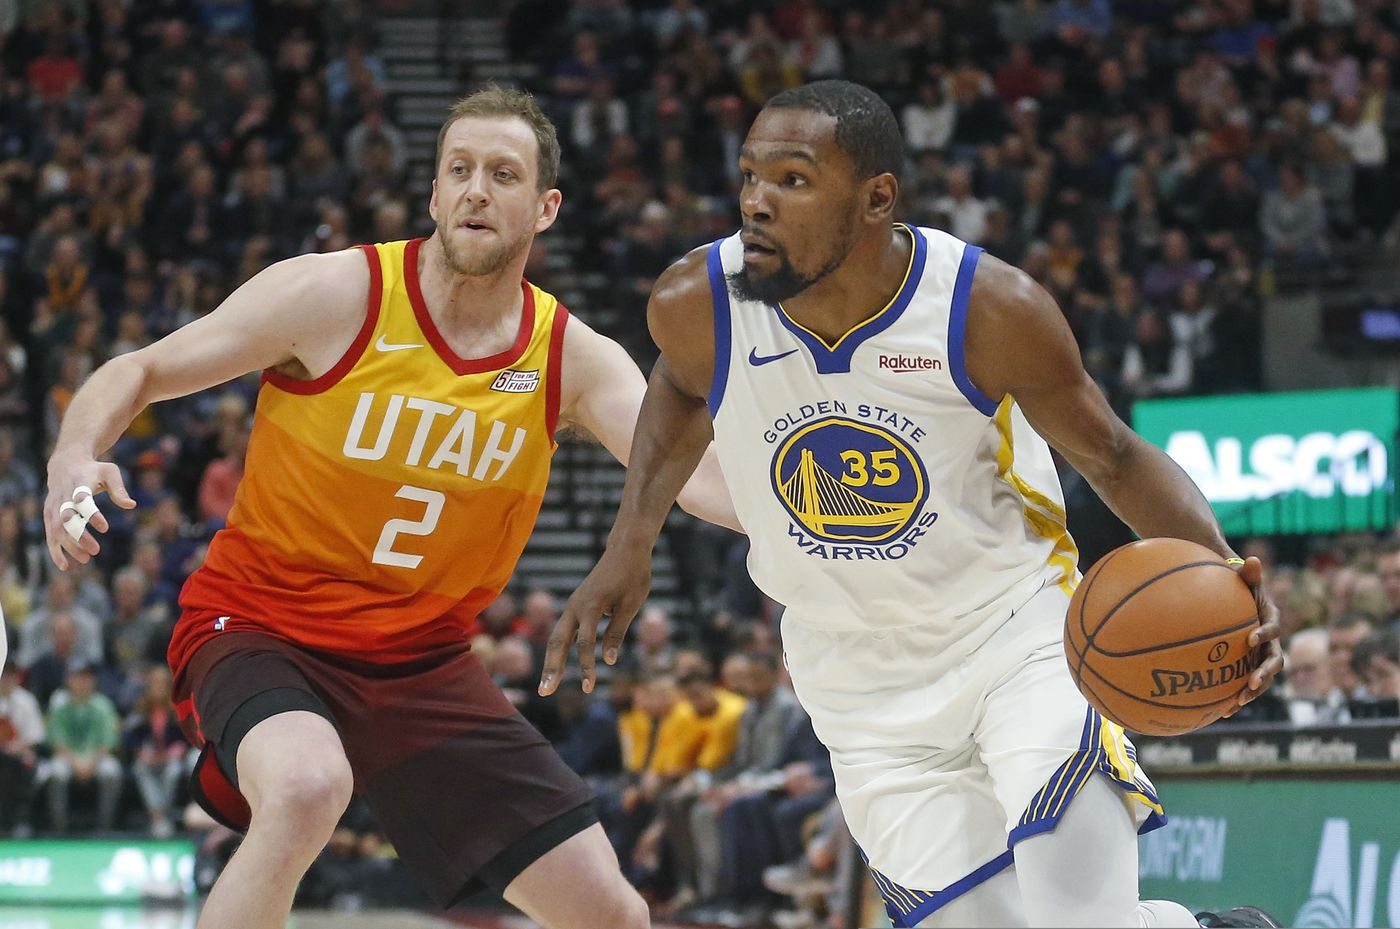 fe77d4ddd50 Golden State Warriors forward Kevin Durant (35) drives around Utah Jazz  forward Joe Ingles